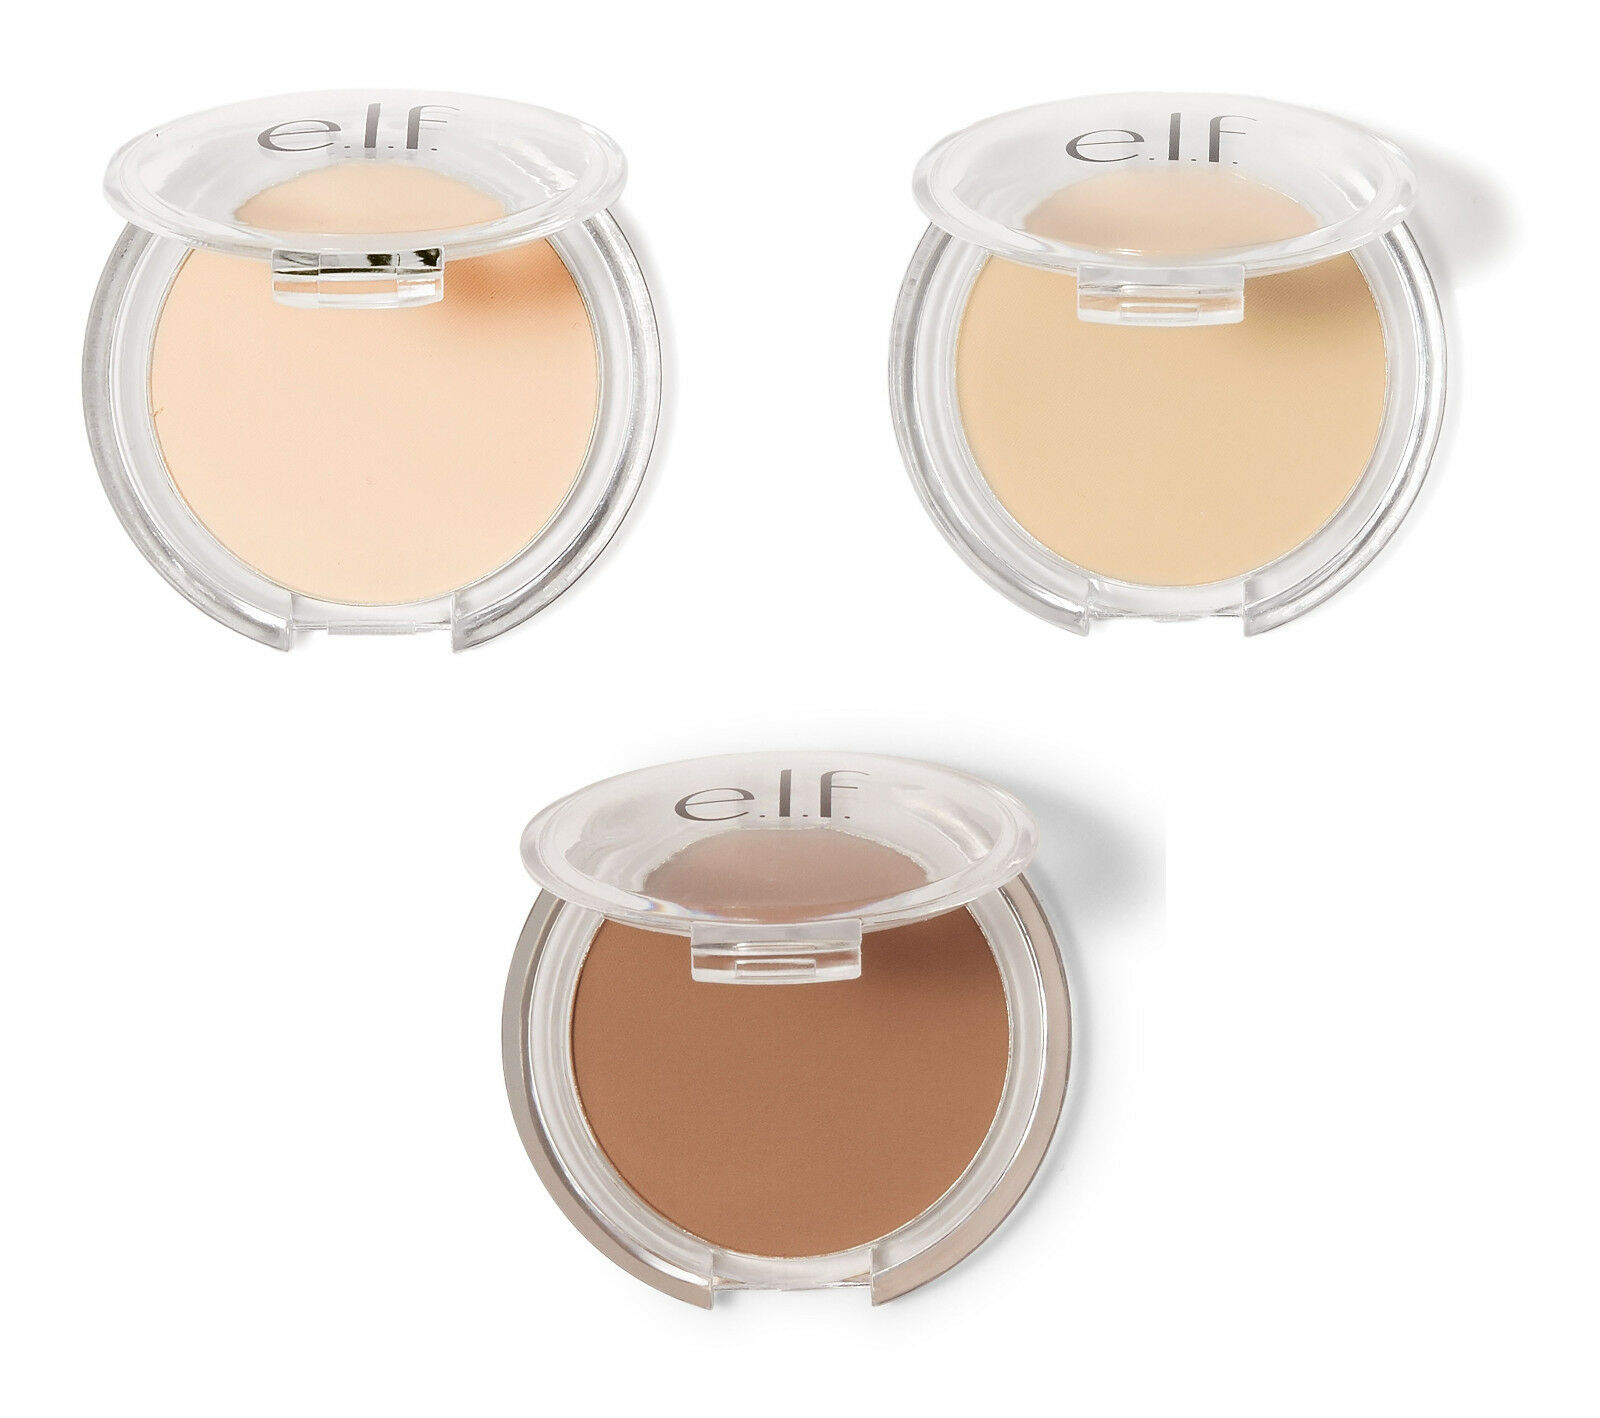 Elf Prime And Stay Finishing Powder Nip Choose Color Makeup Ponds Instabright Tone Up Cream 40g Free Magic Bb 50g 1 Of 1free Shipping